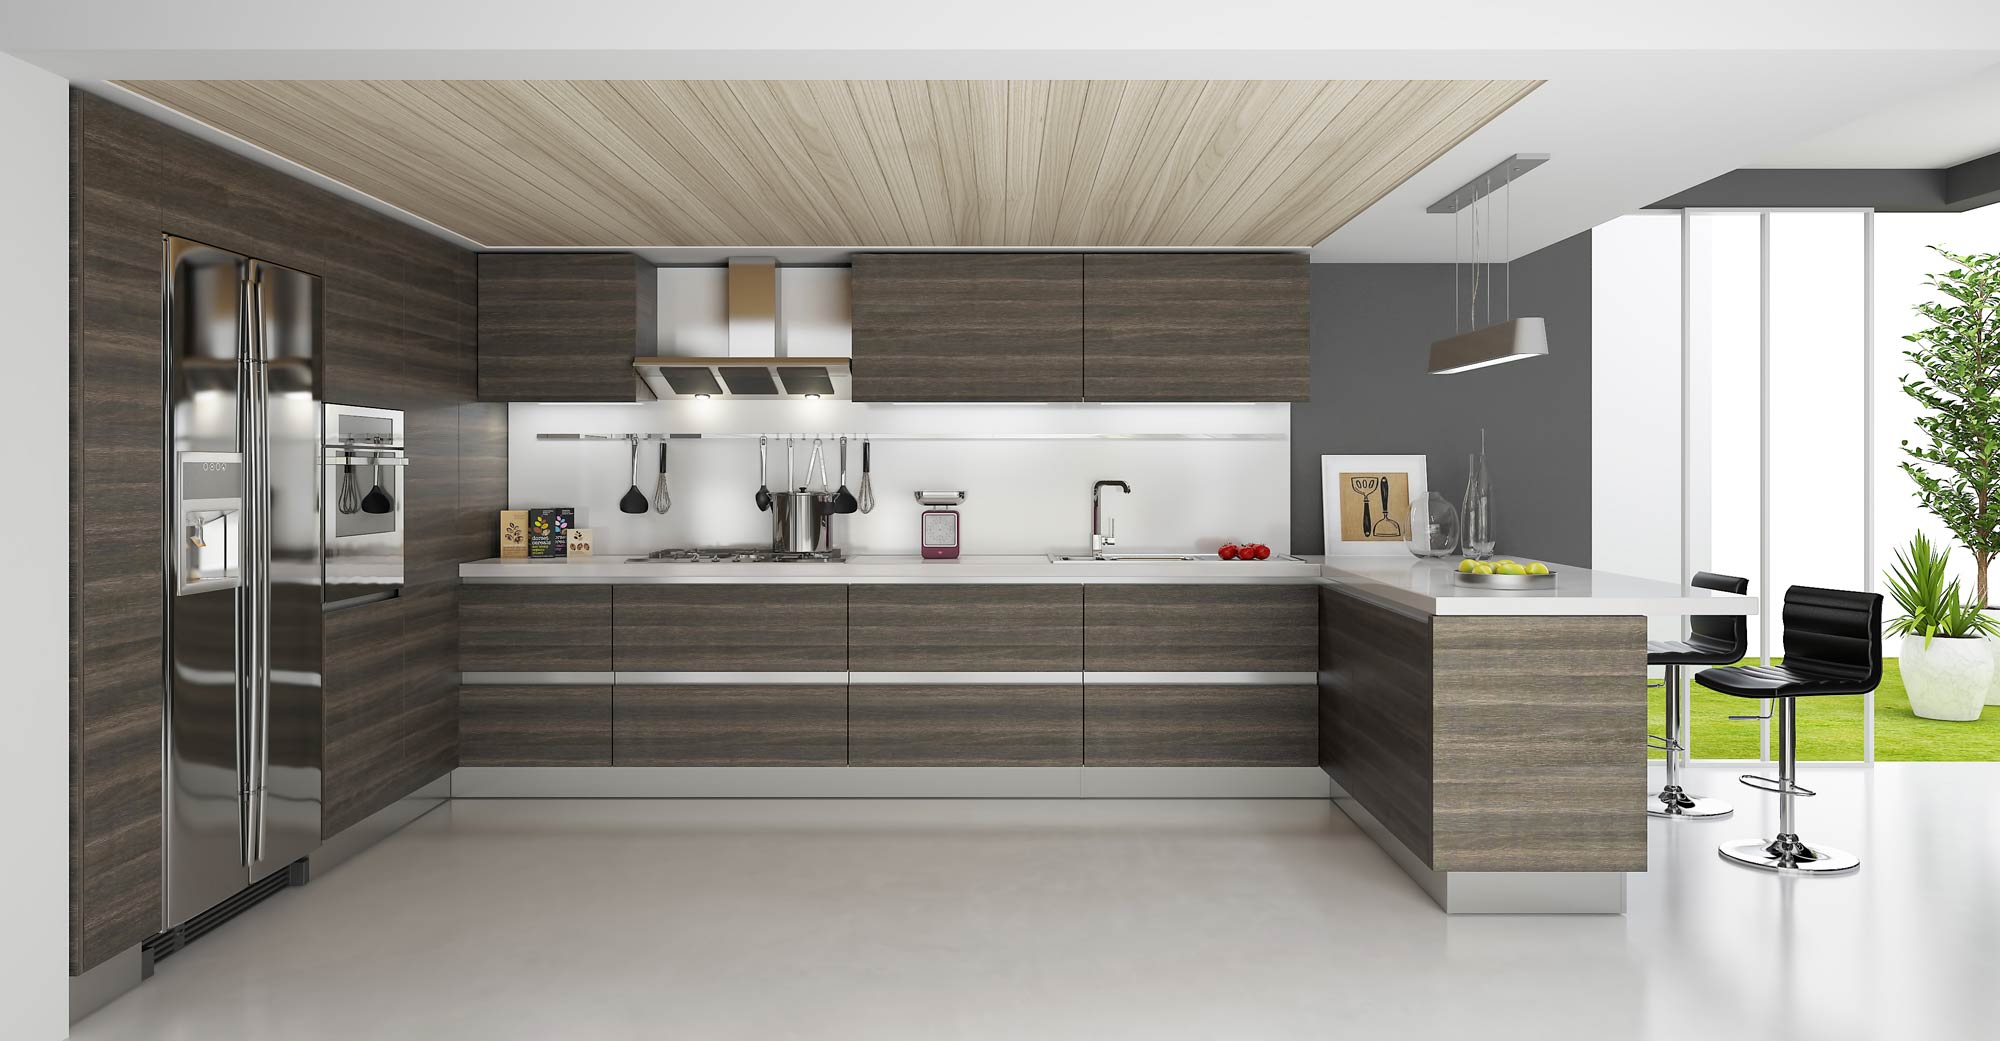 contemporary and modern kitchens what is the difference kitchen cabinets with legs Contemporary and modern kitchens what is the difference